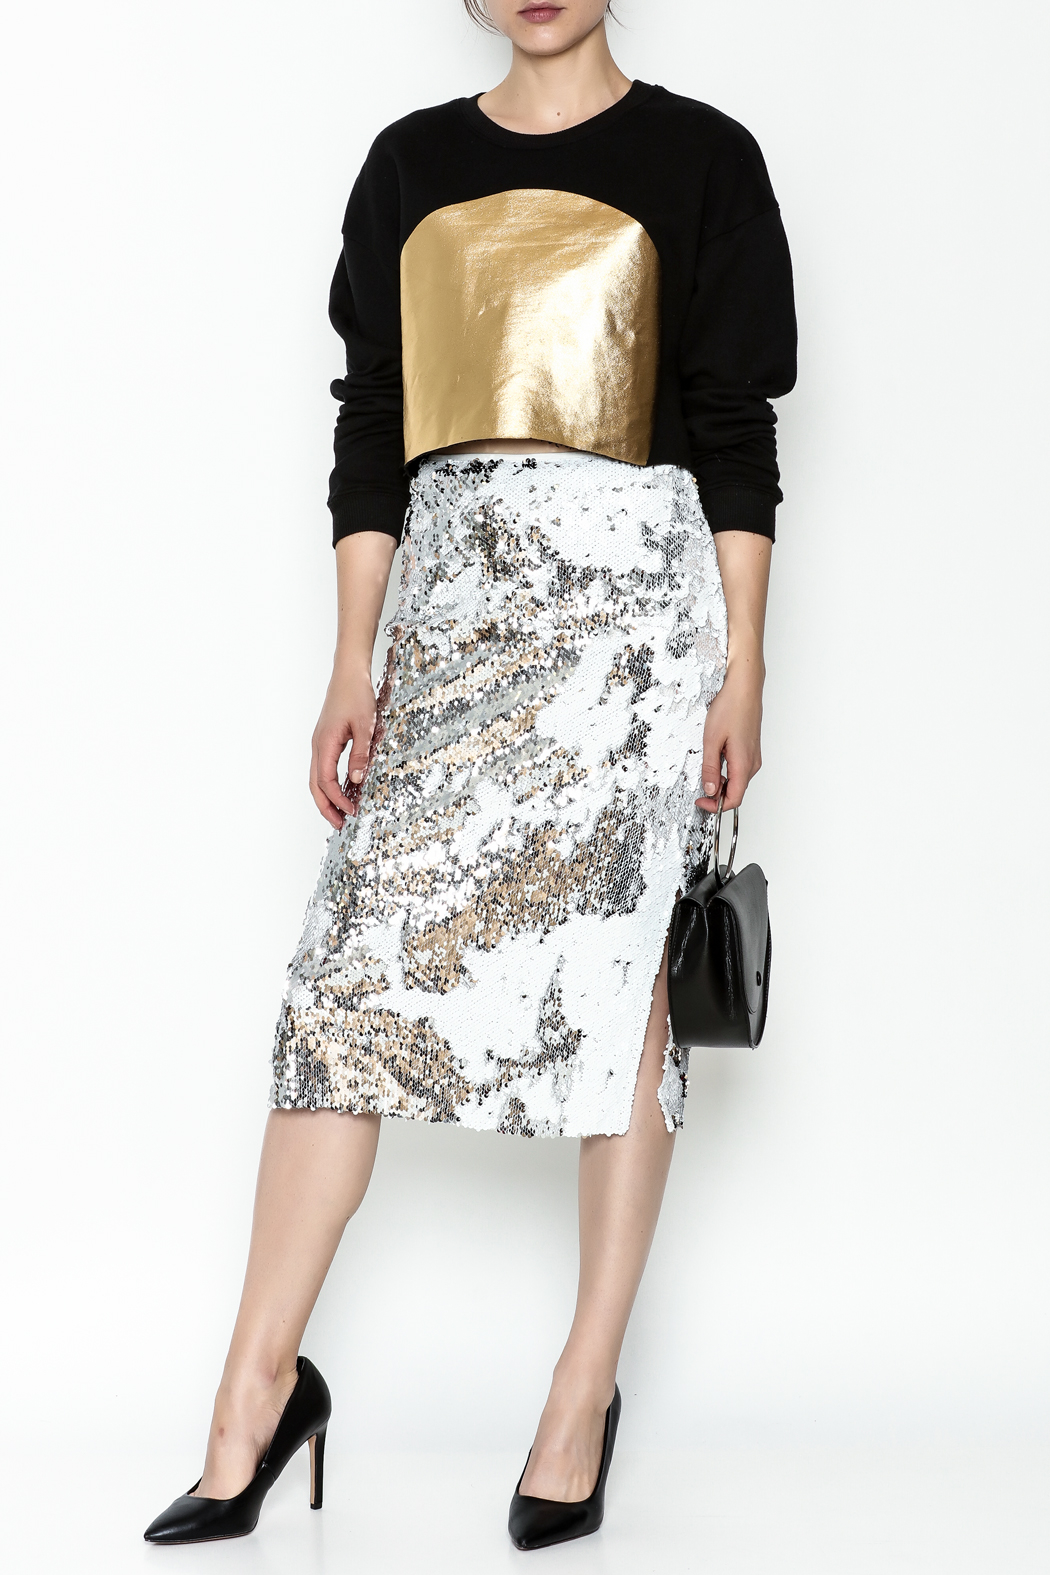 re:named Gold Foil Sweatshirt - Side Cropped Image